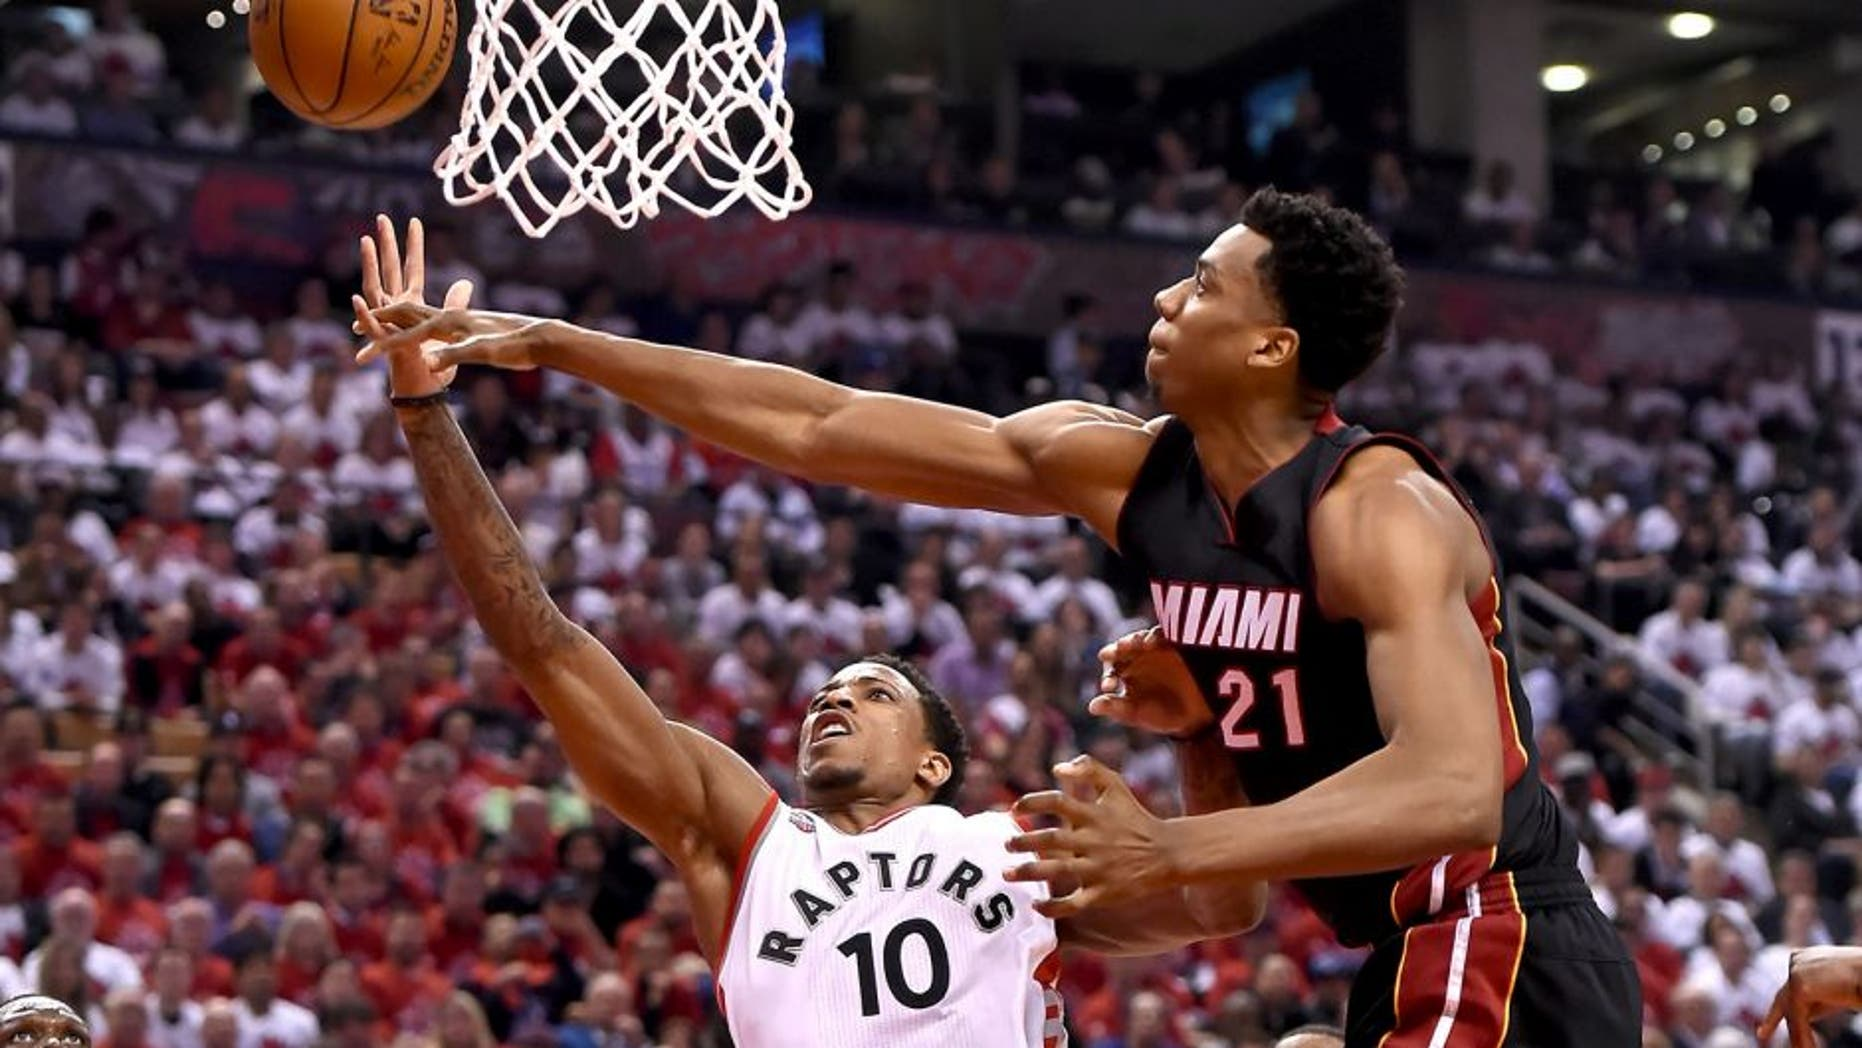 May 3, 2016; Toronto, Ontario, CAN; Toronto Raptors guard DeMar DeRozan (10) has a shot blocked by Miami Heat center Hassan Whiteside (21) in game one of the second round of the NBA Playoffs at Air Canada Centre. The Heat won 102-96. Mandatory Credit: Dan Hamilton-USA TODAY Sports